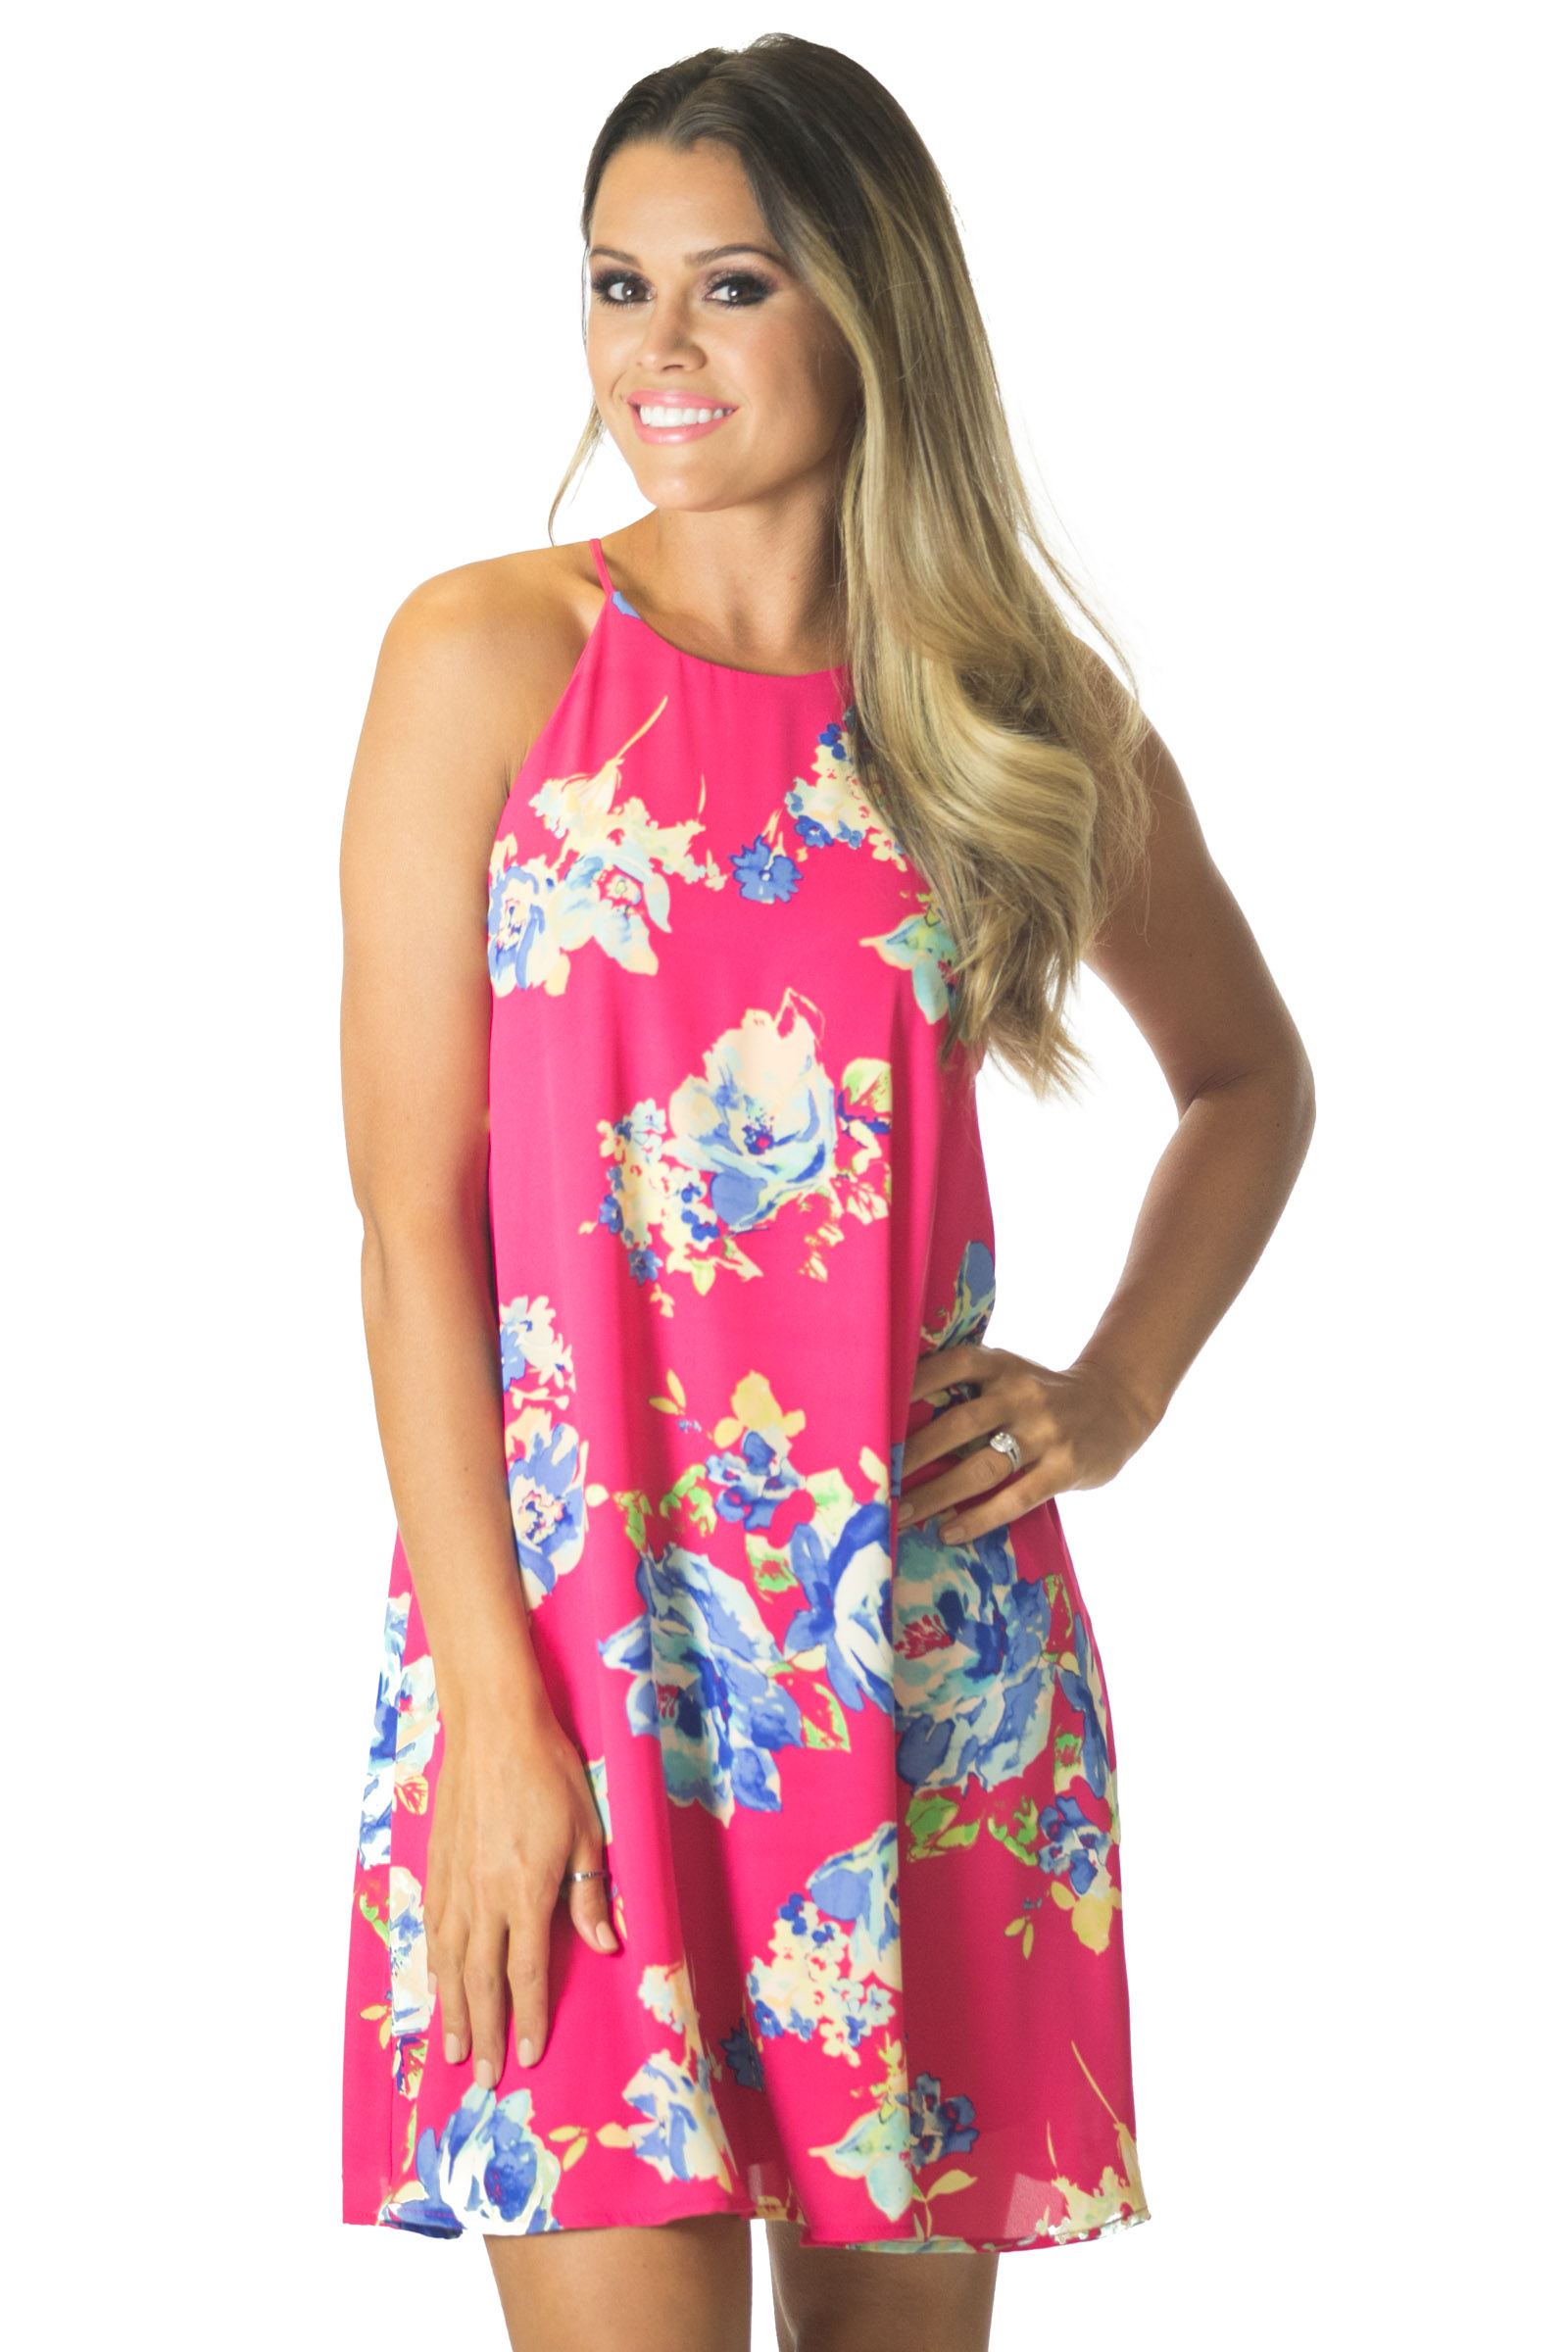 Smell the Roses Dress || RaeLynn's Boutique